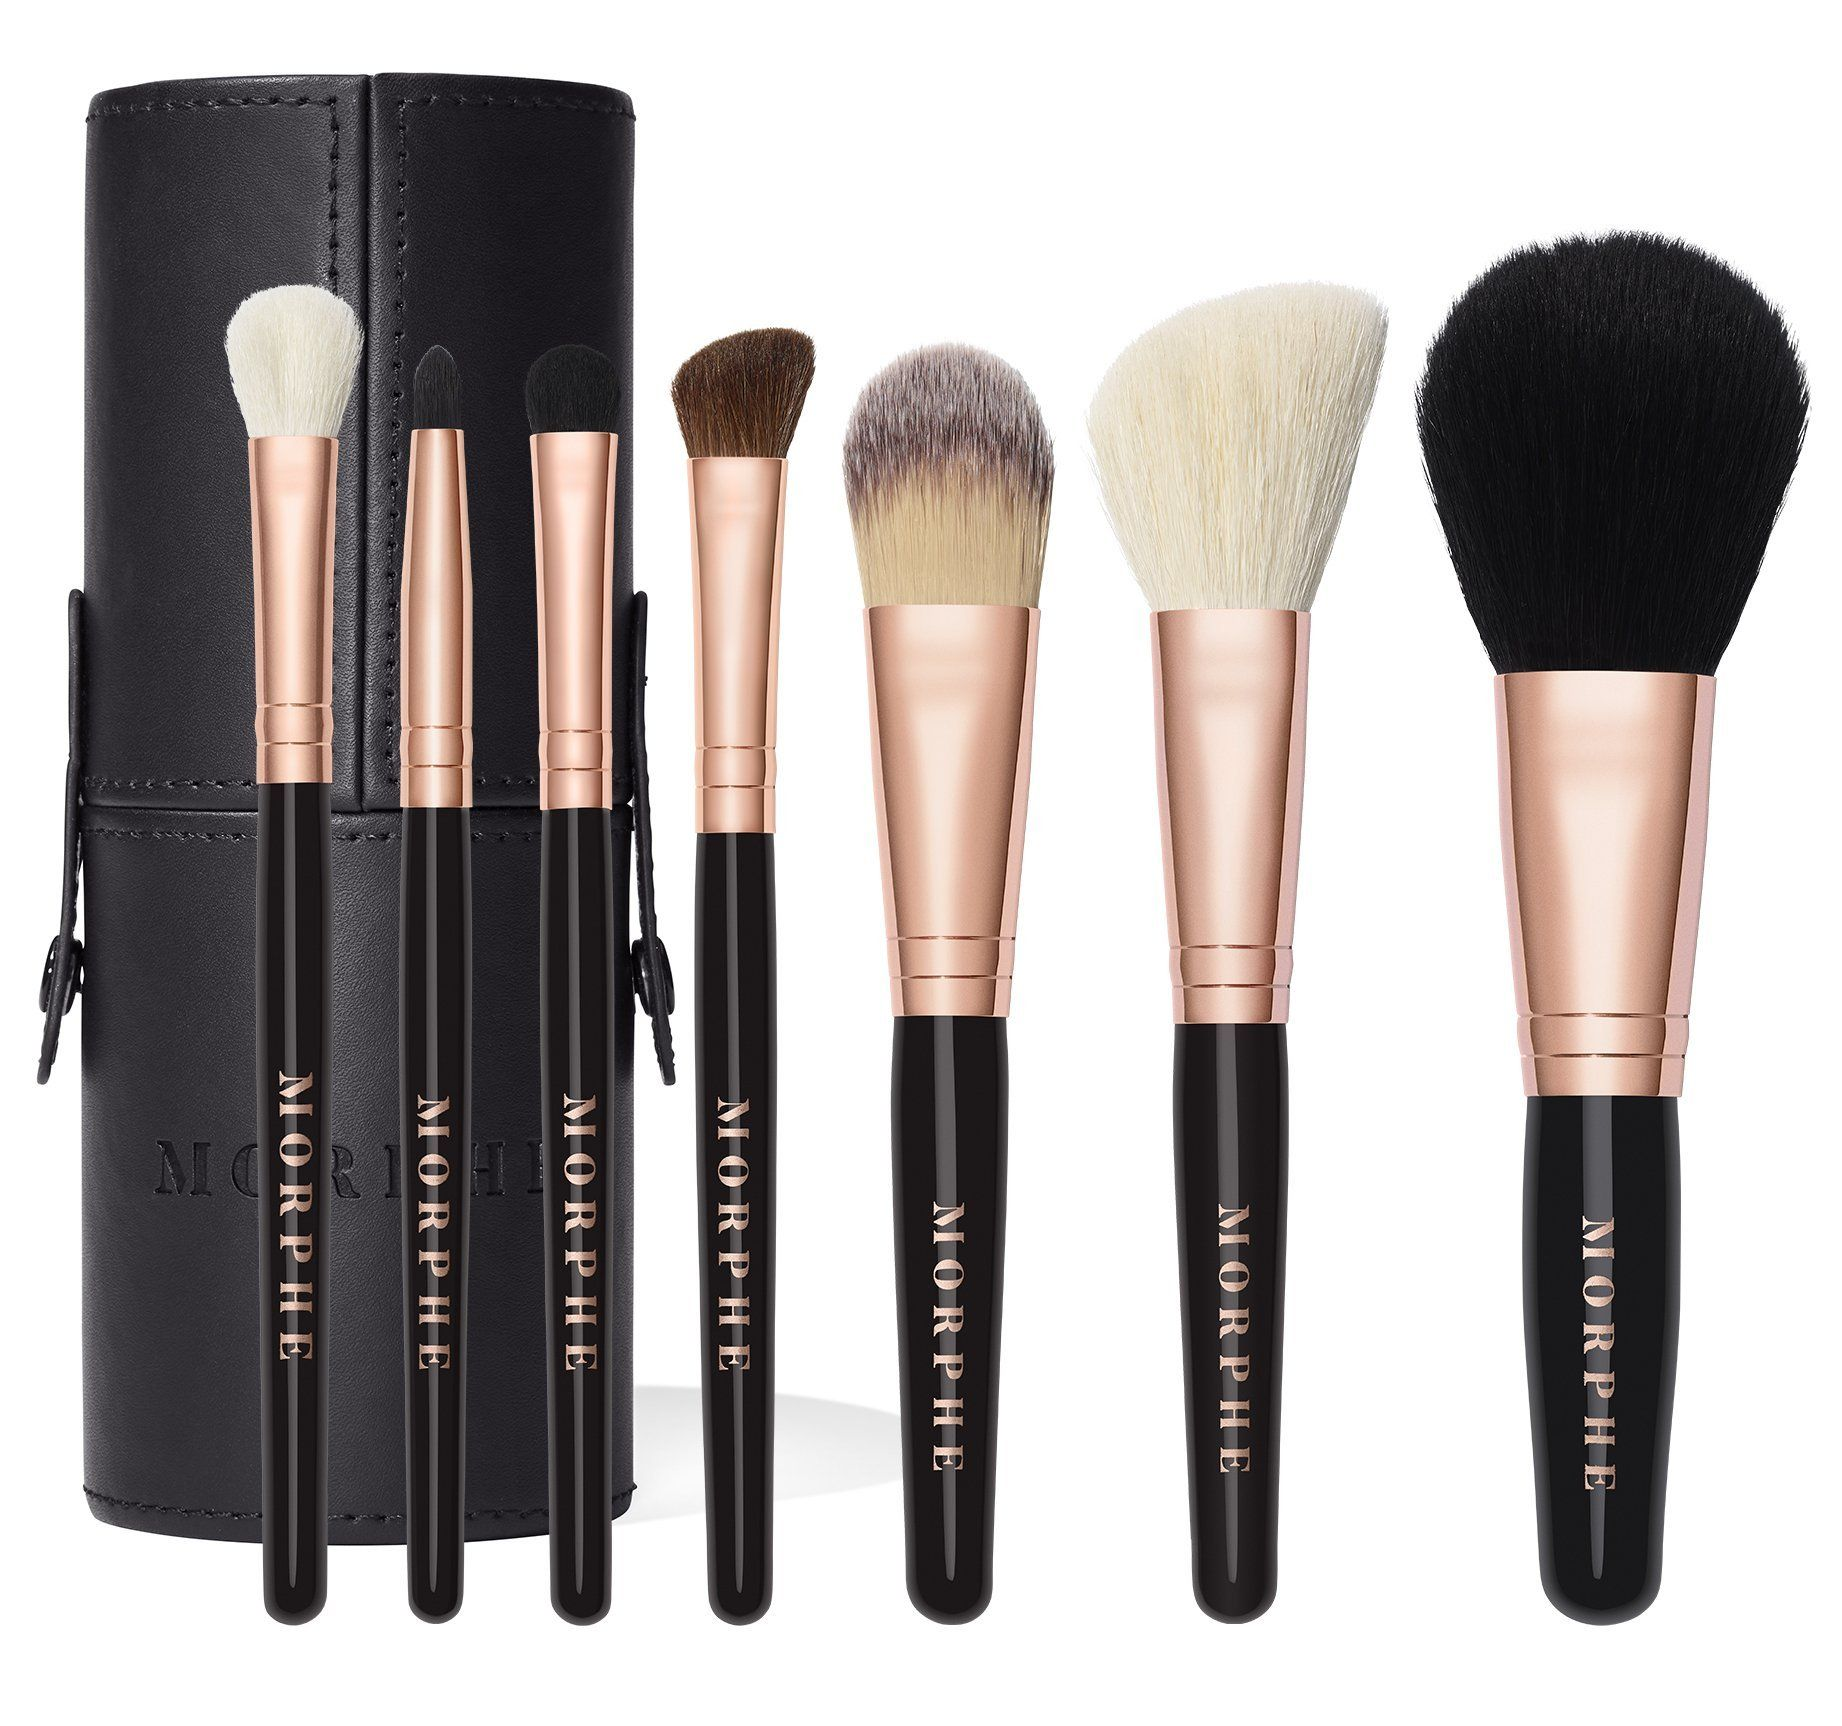 Rose baes brush collection (With images) Rose gold brush